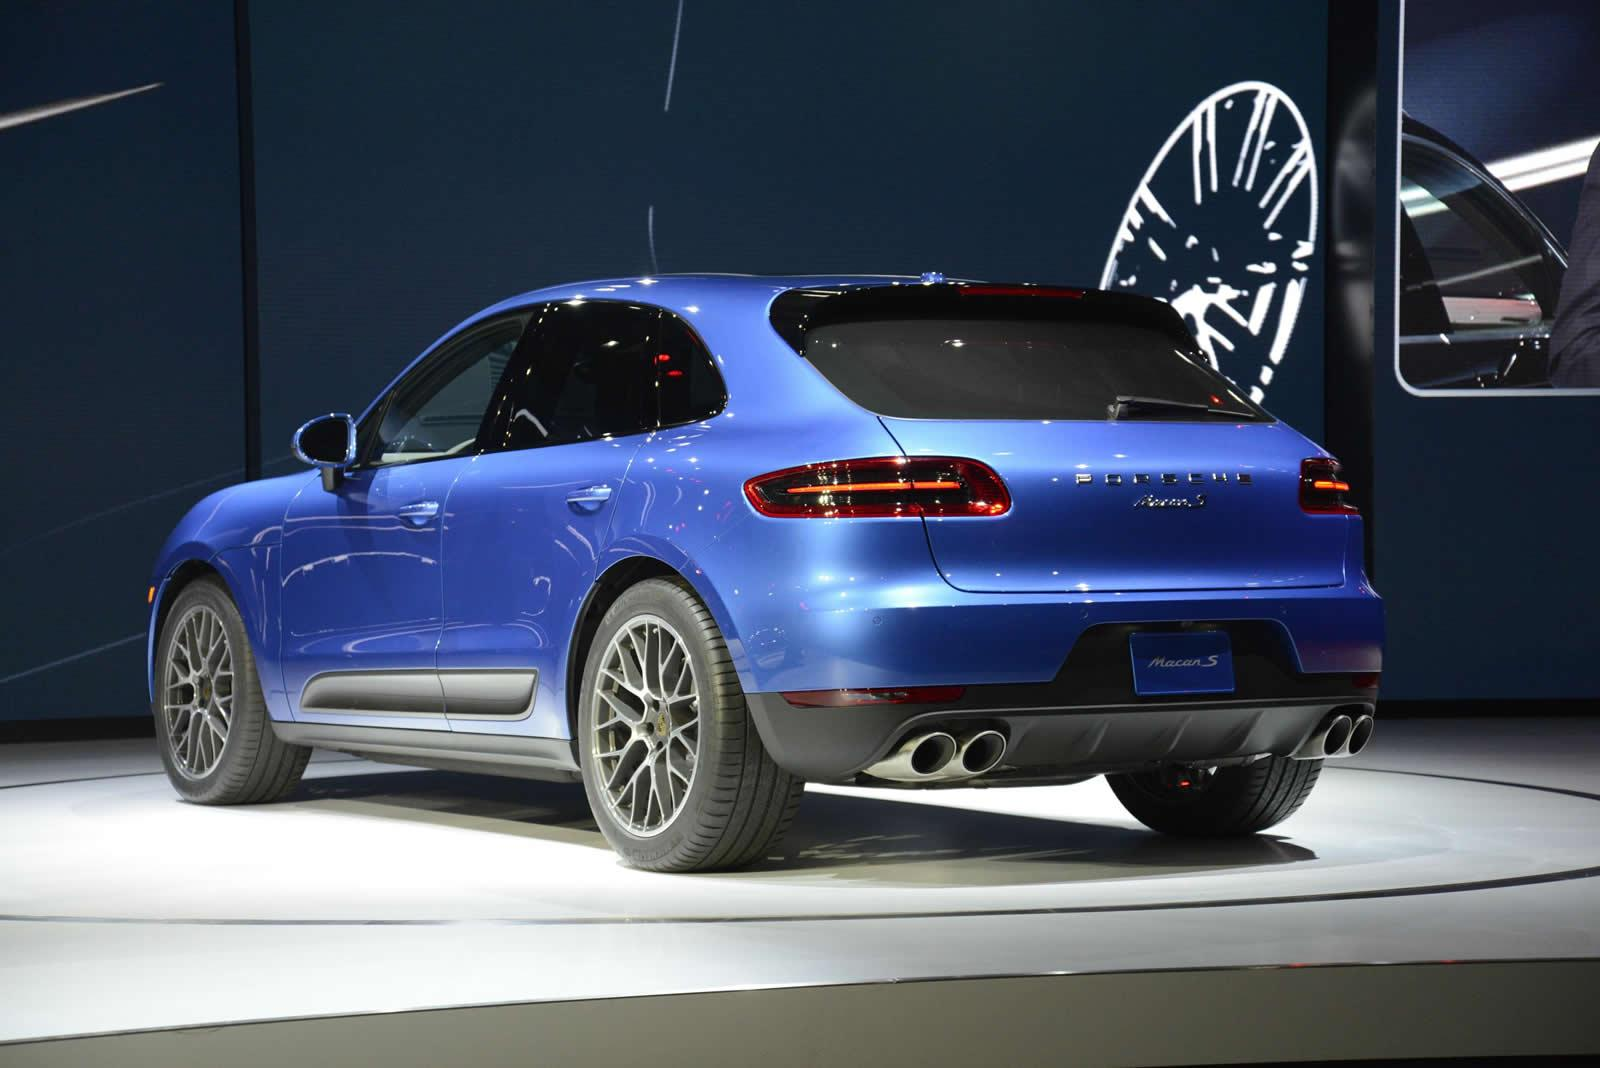 Macan S back